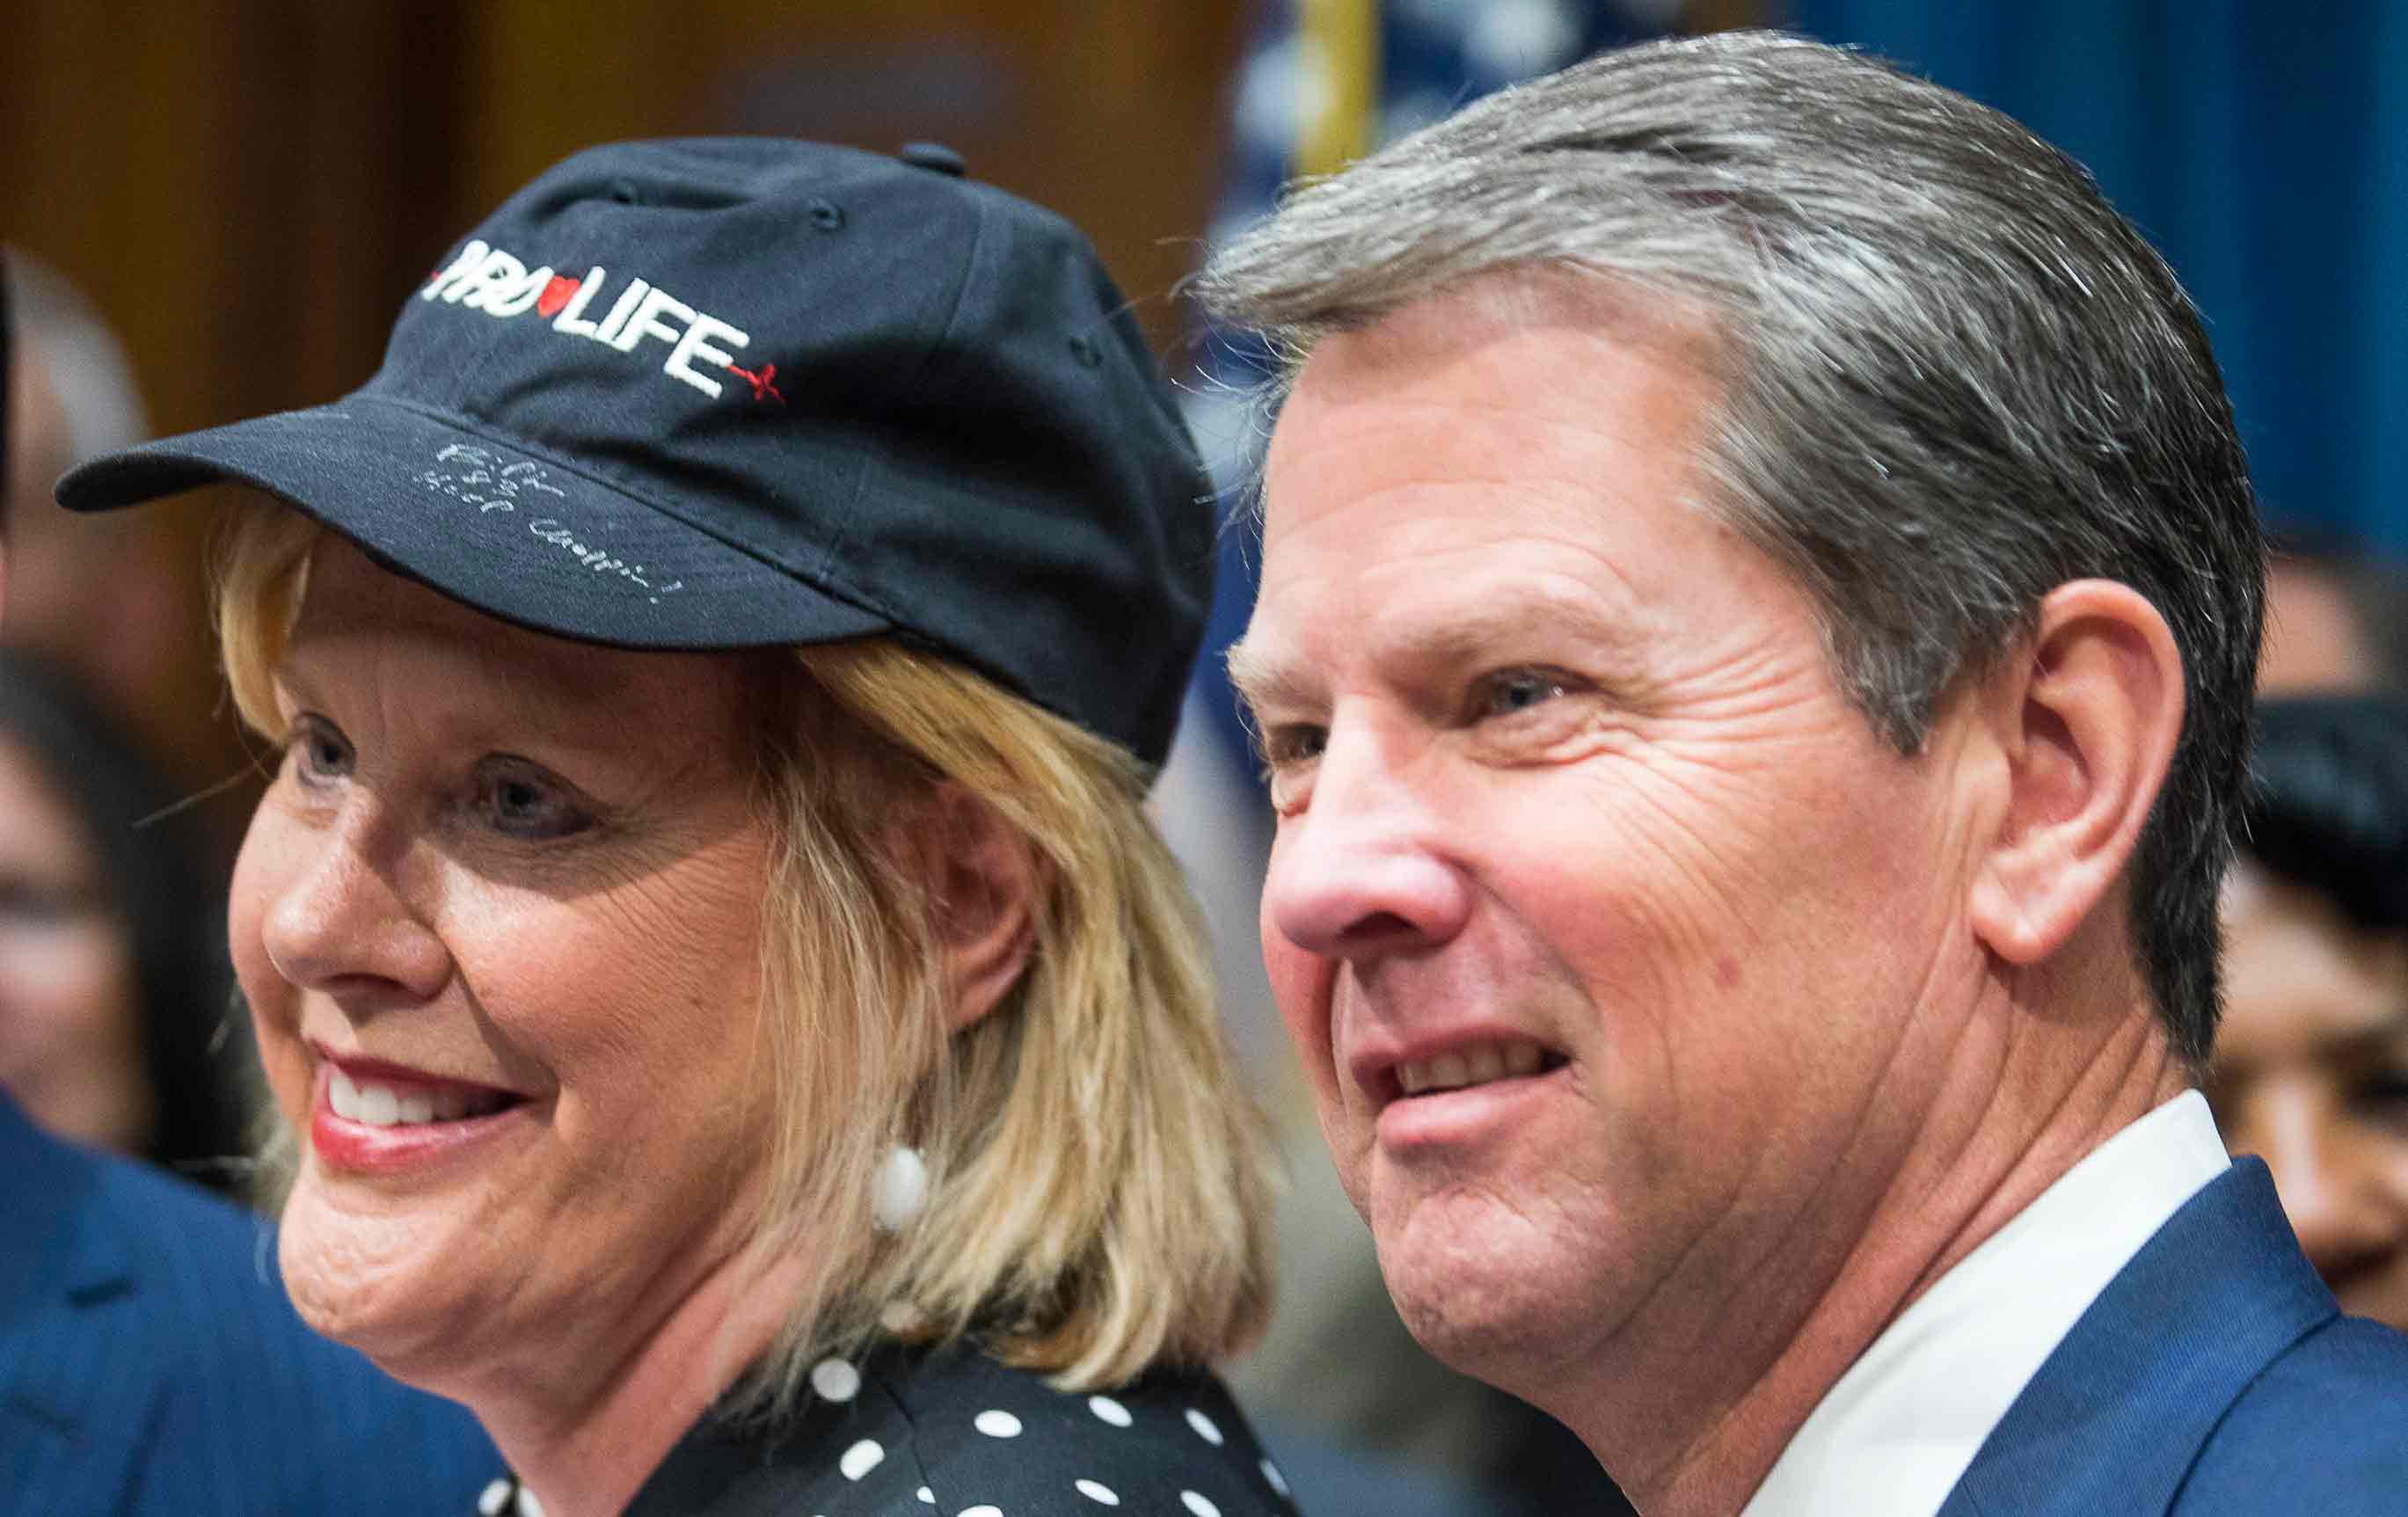 Brian Kemp and Renee Unterman signs away women's reproductive rights